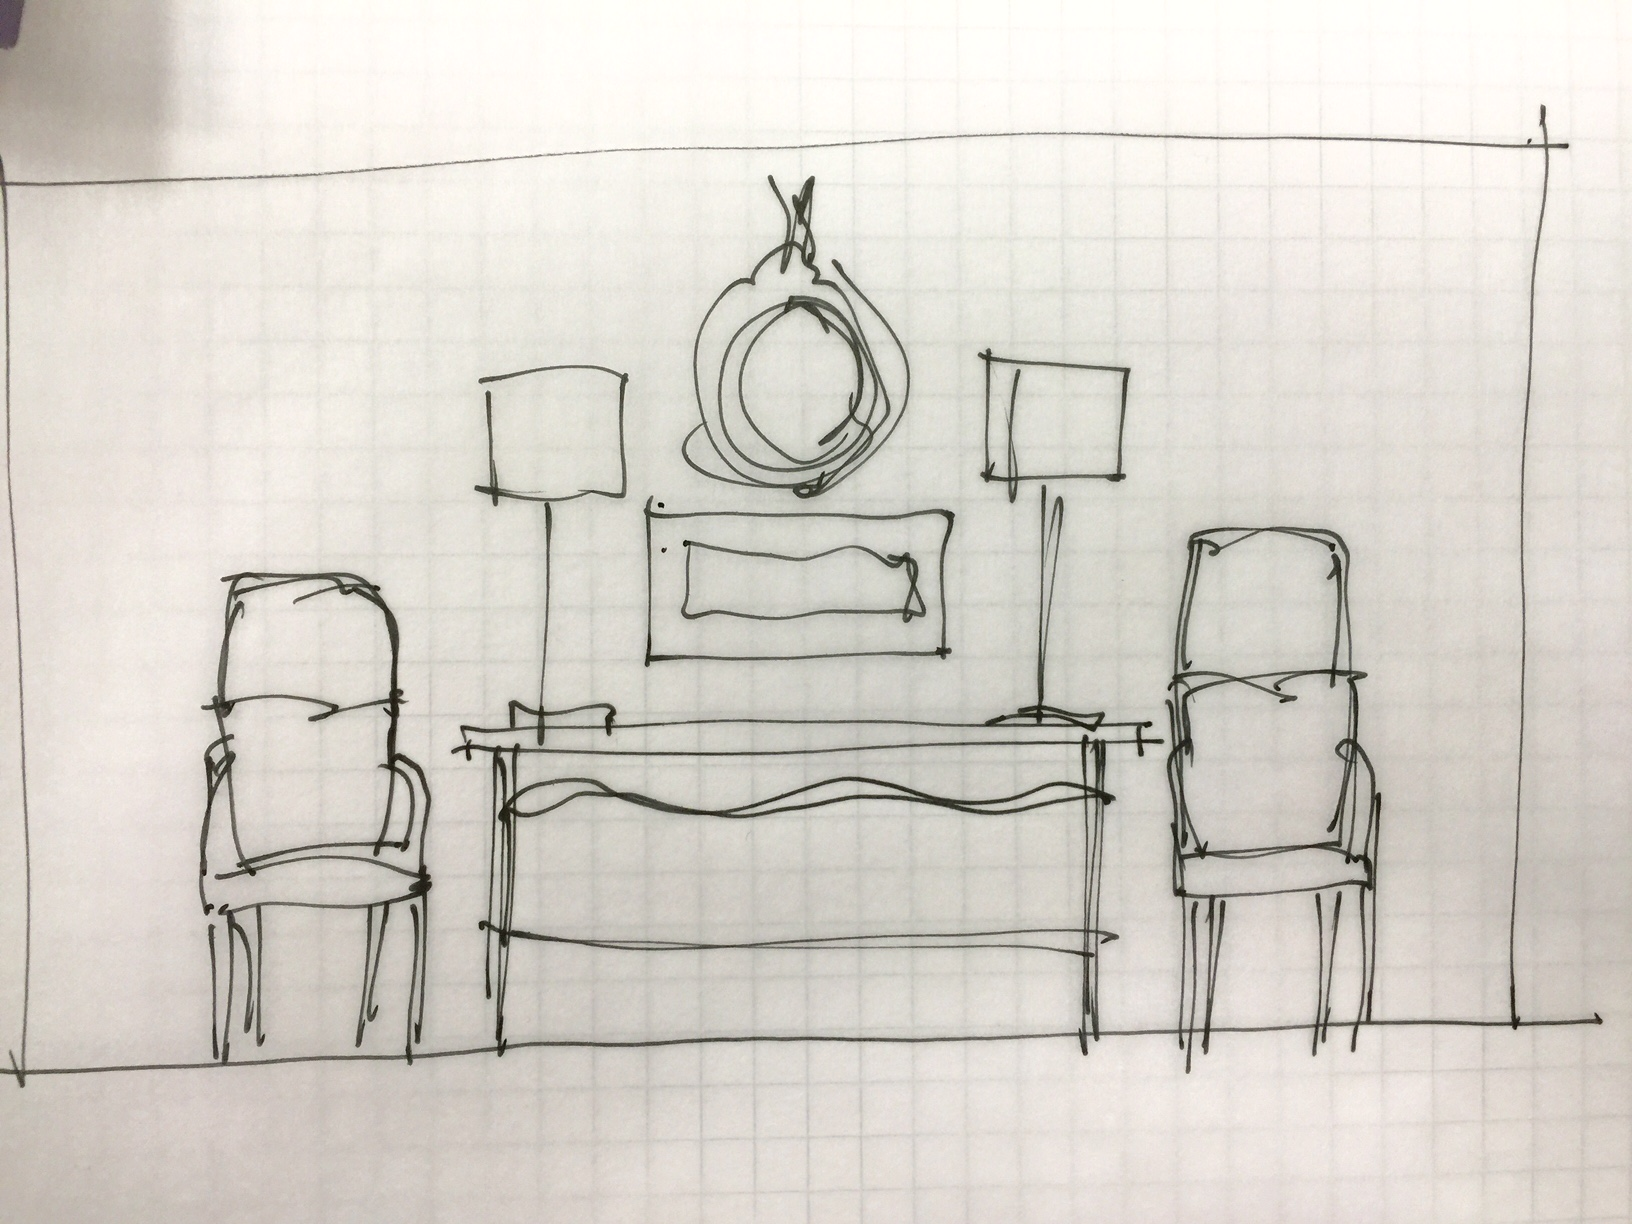 Sketch of home decor shop window layout